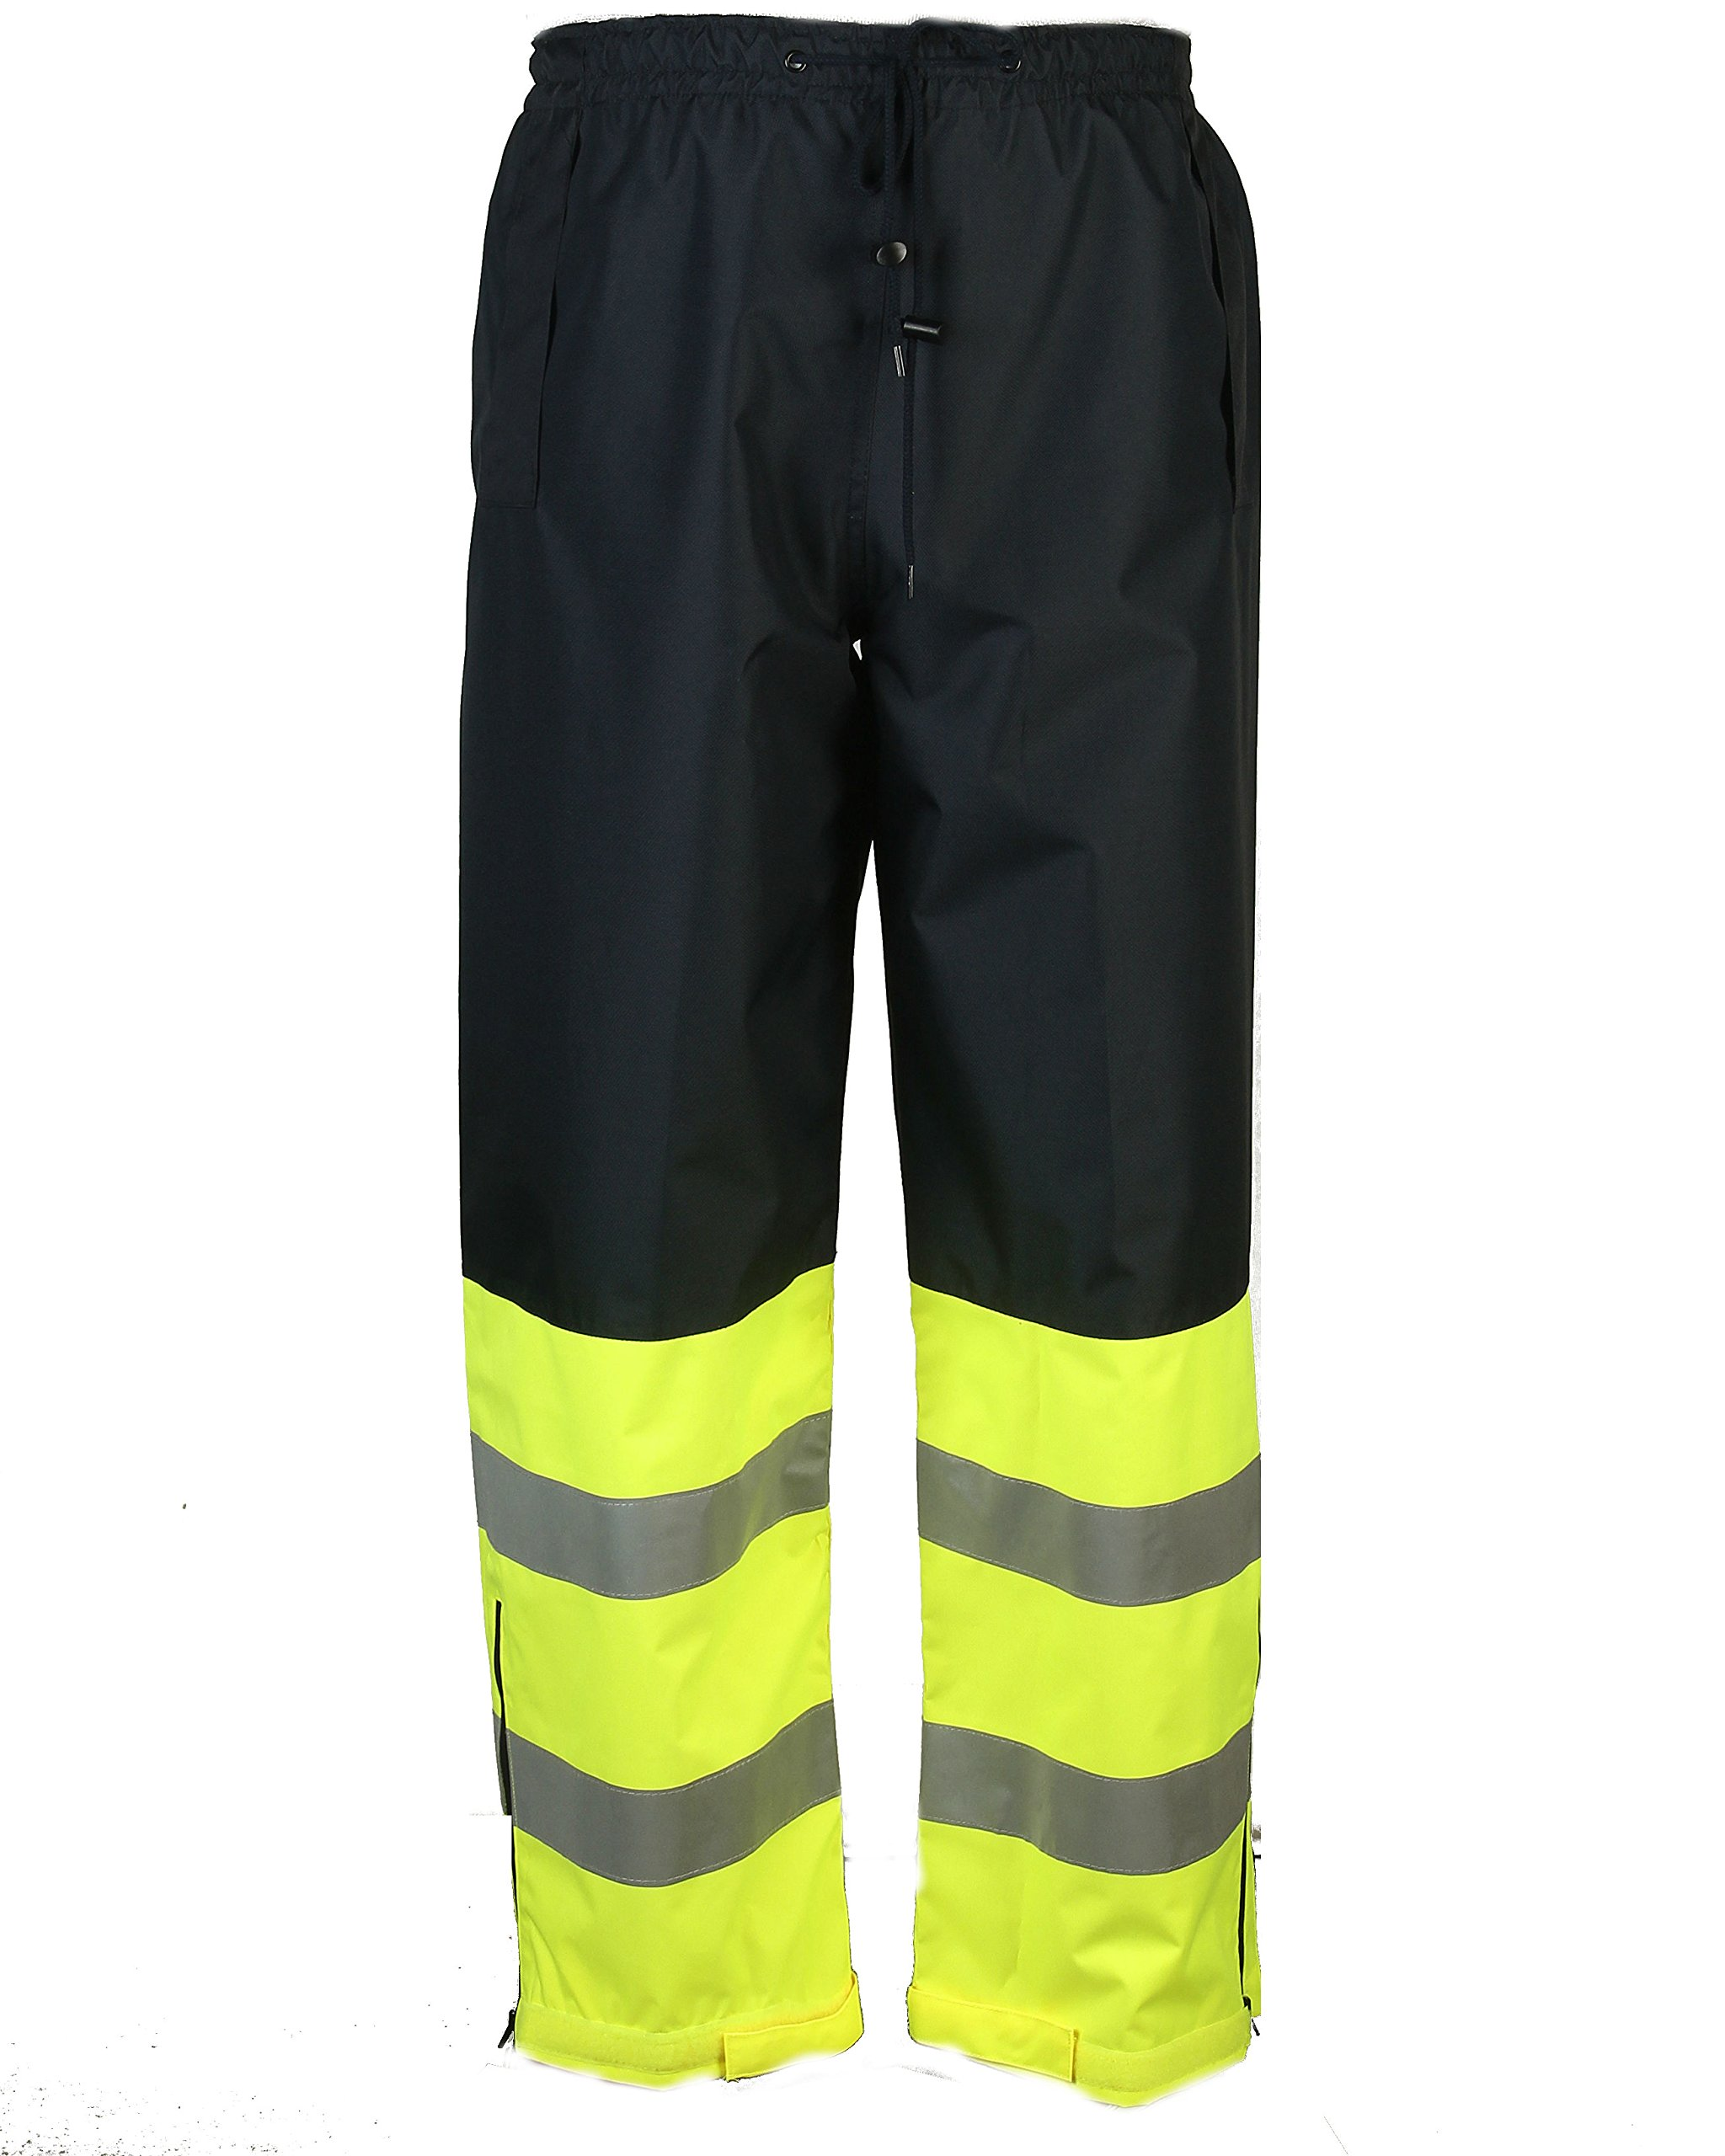 Safety Depot Two Tone Lime Yellow Black Reflective Class E Safety Draw String Pants Water Resistant High Visibility and Light Weight 737c-3 (2XL)